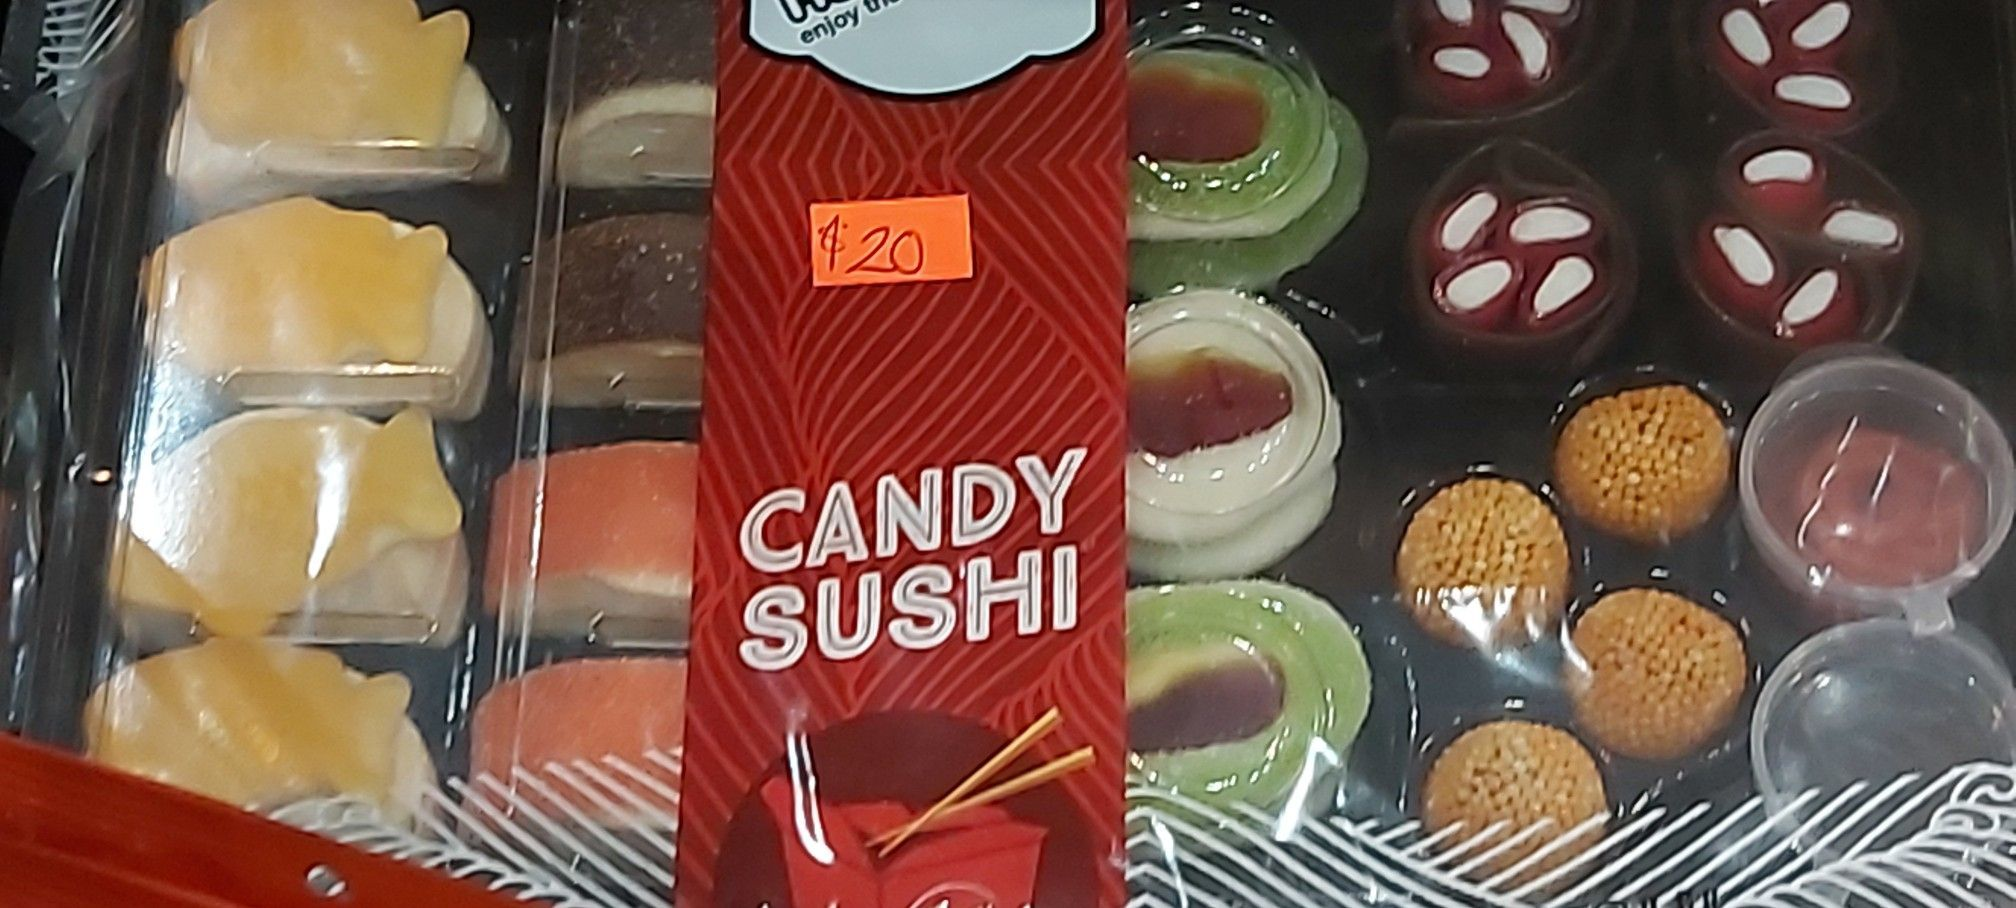 London Ontario Comic Con Oct 2019 Candy Sushi Candysushi Candy Sushi